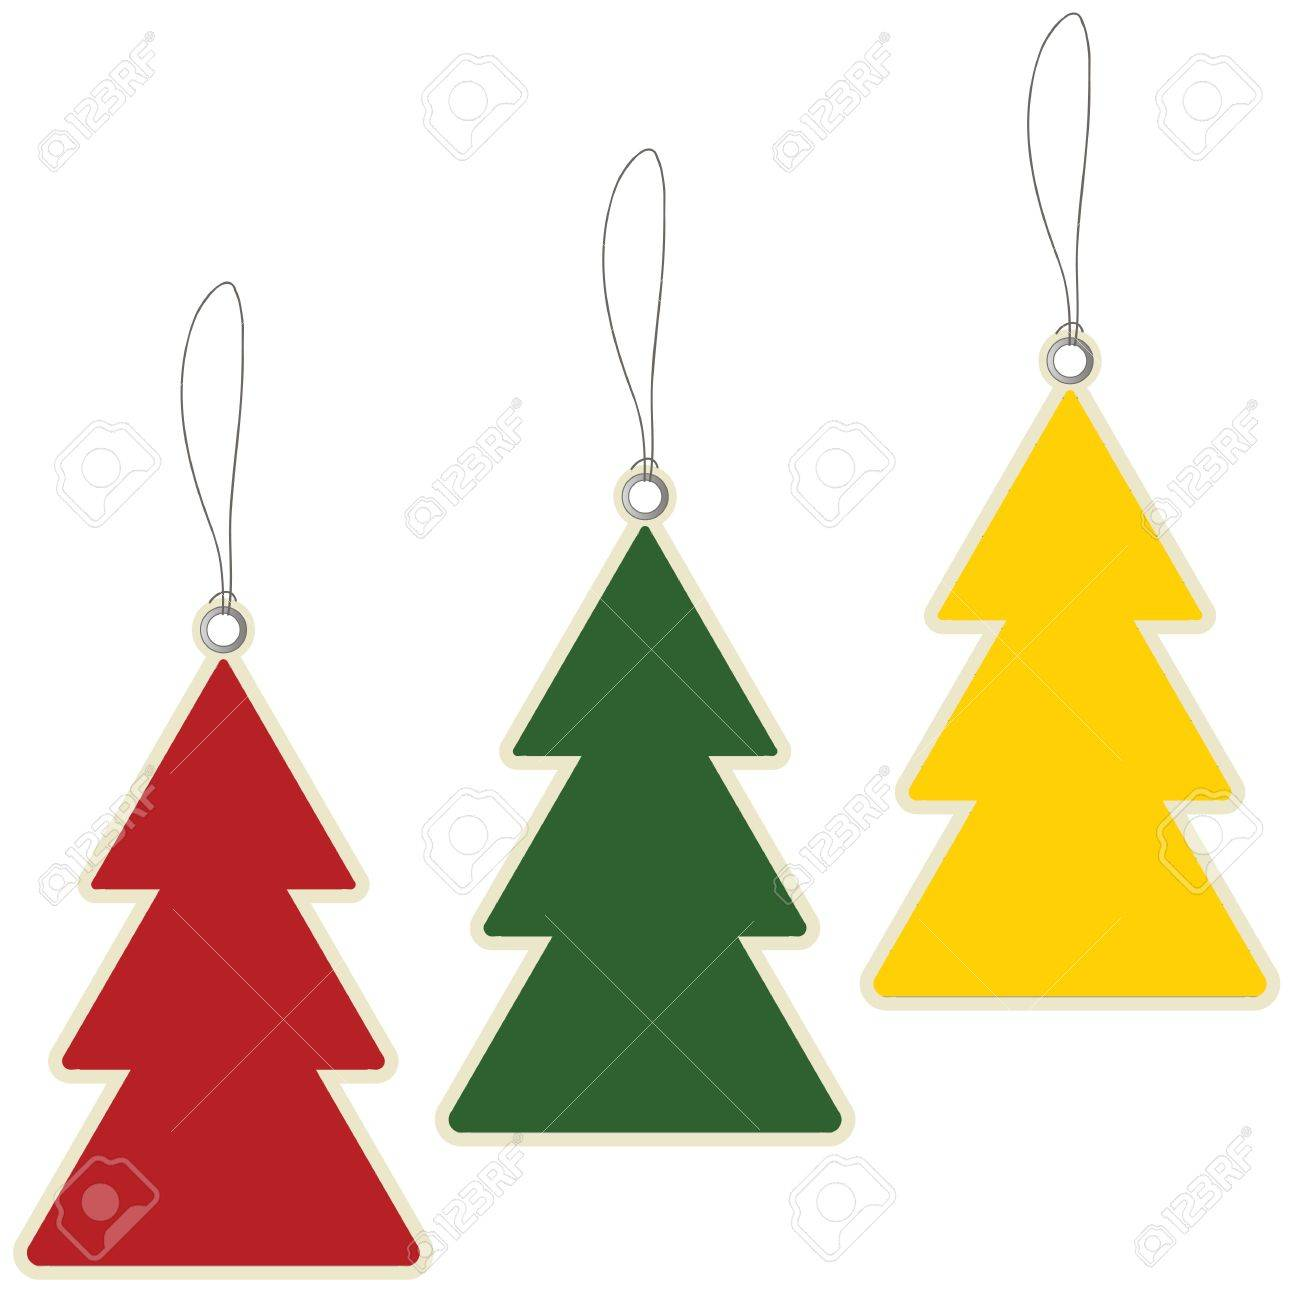 christmas tree price tag royalty free cliparts vectors and stock